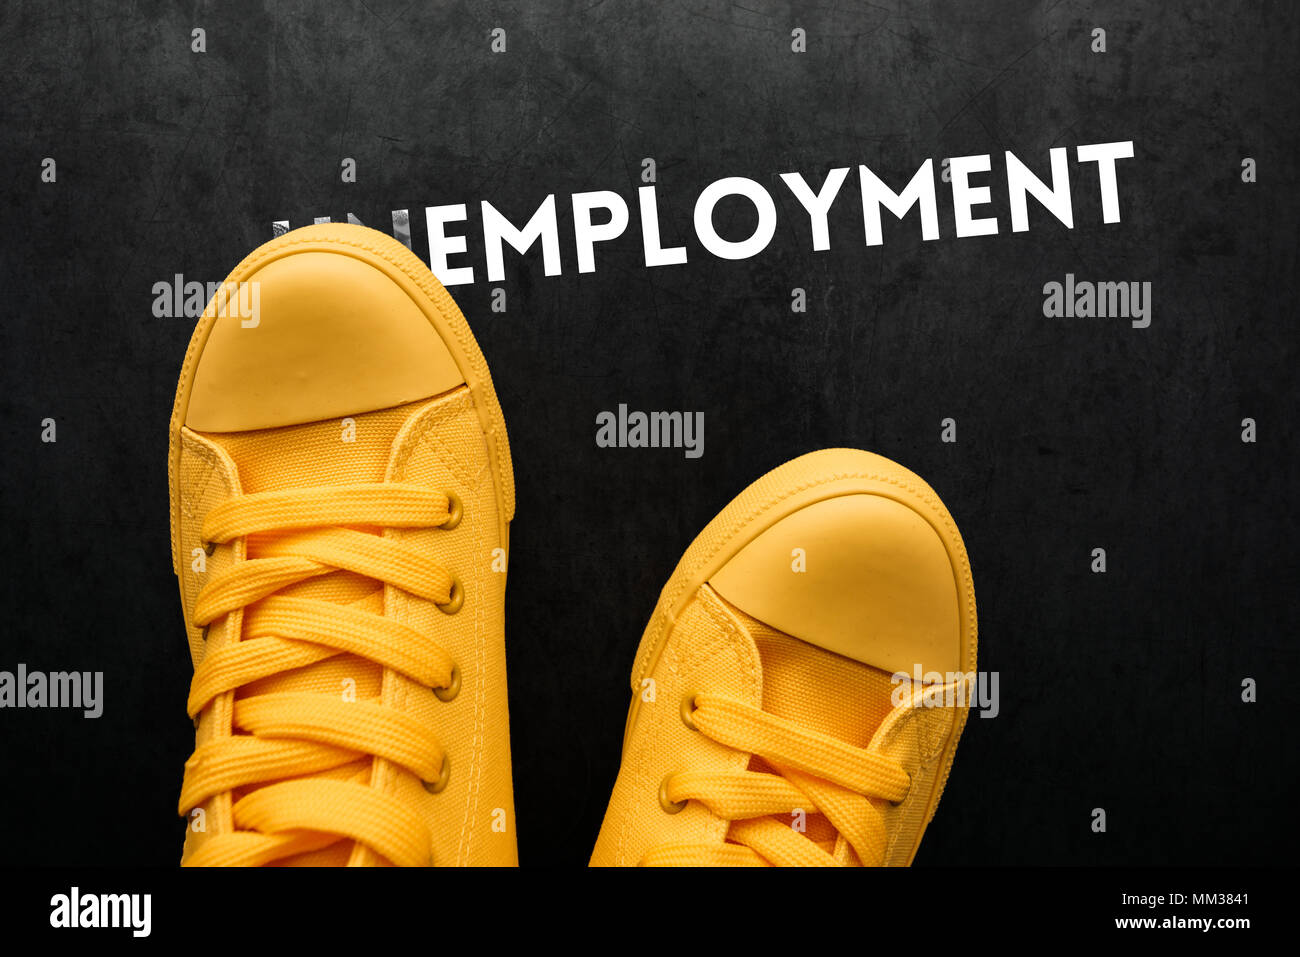 Unemployment concept, young man covering part of the word to make Employment - Stock Image